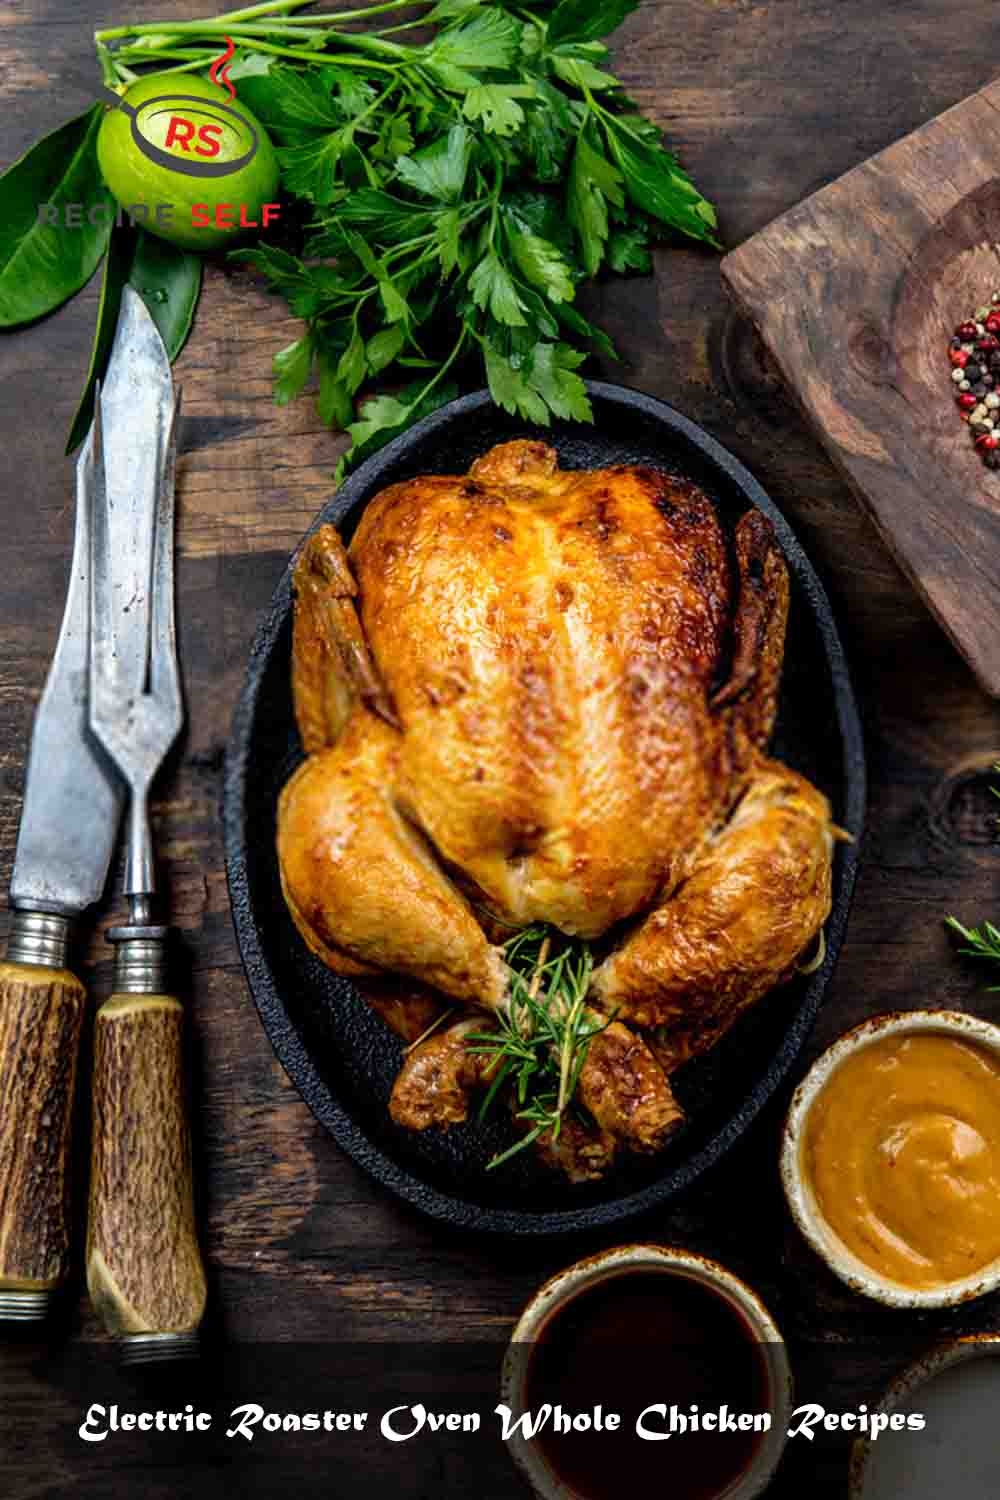 Electric Roaster Oven Whole Chicken Recipes